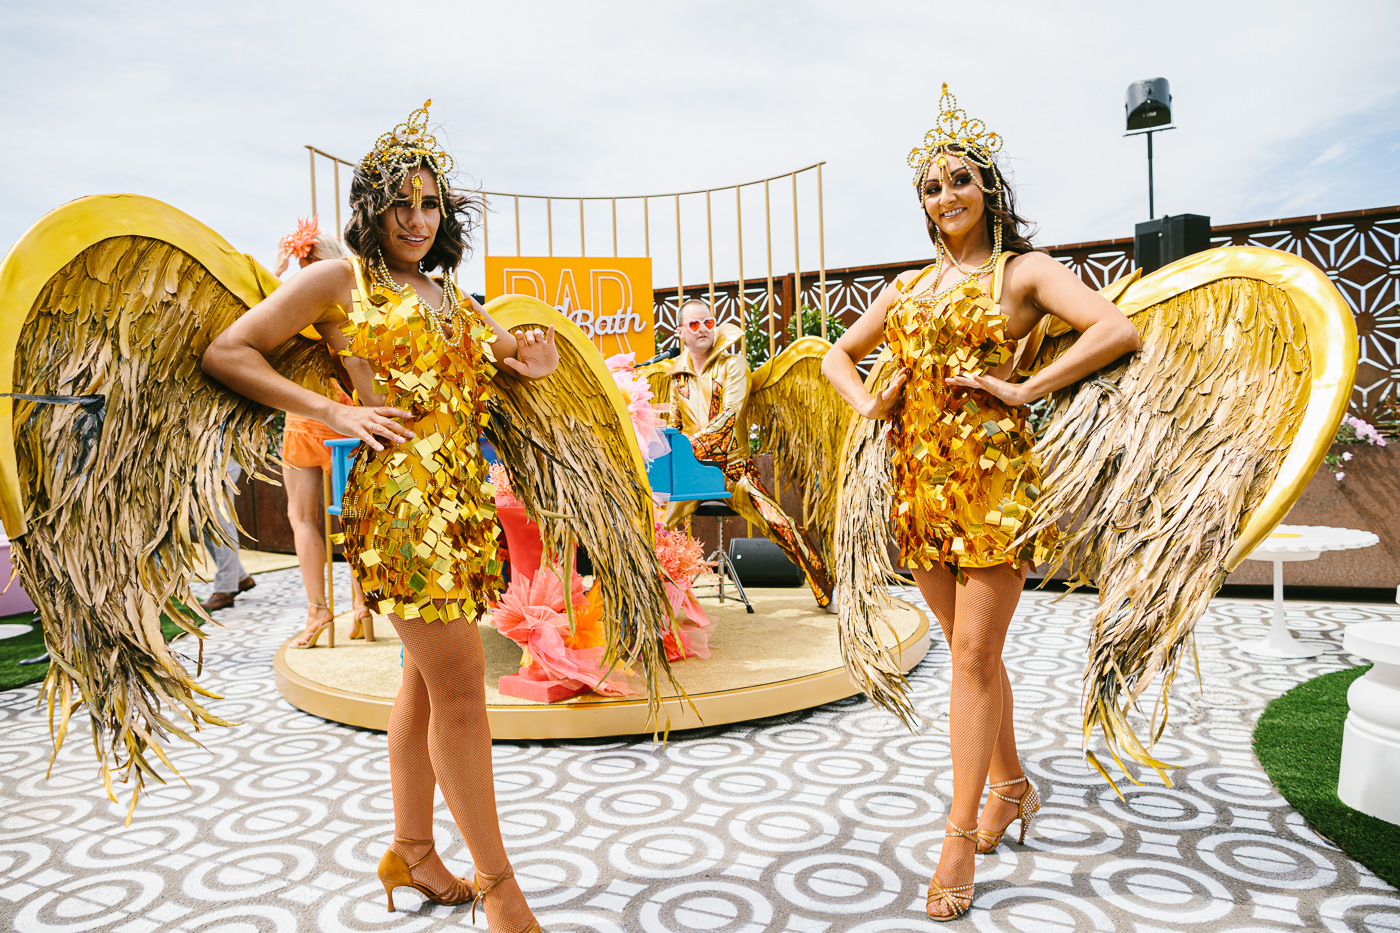 Bird Bath Bar at the Races - Winged dancers performing - Entertainment at the races